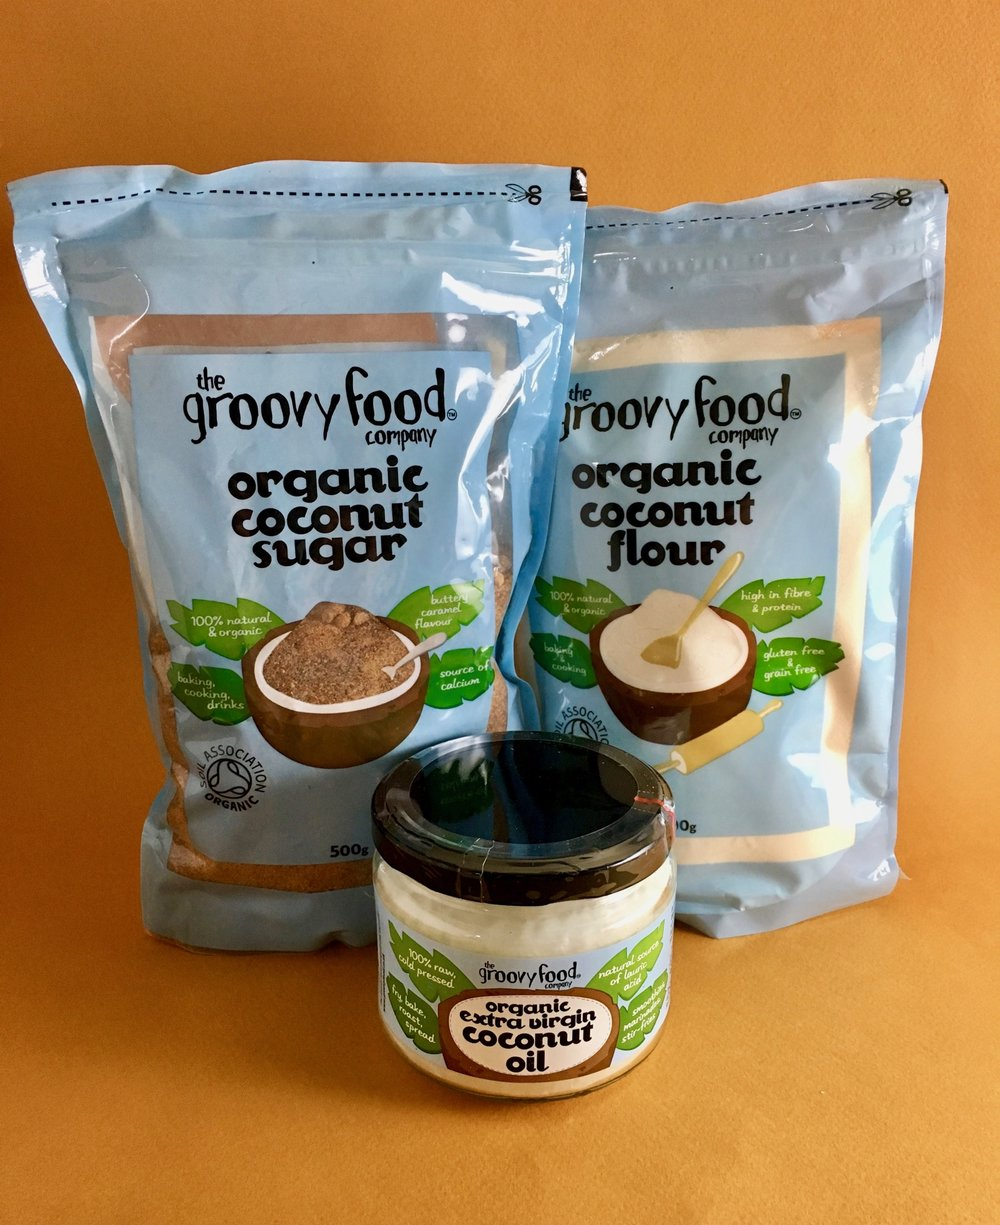 organic coconut products by groovy food